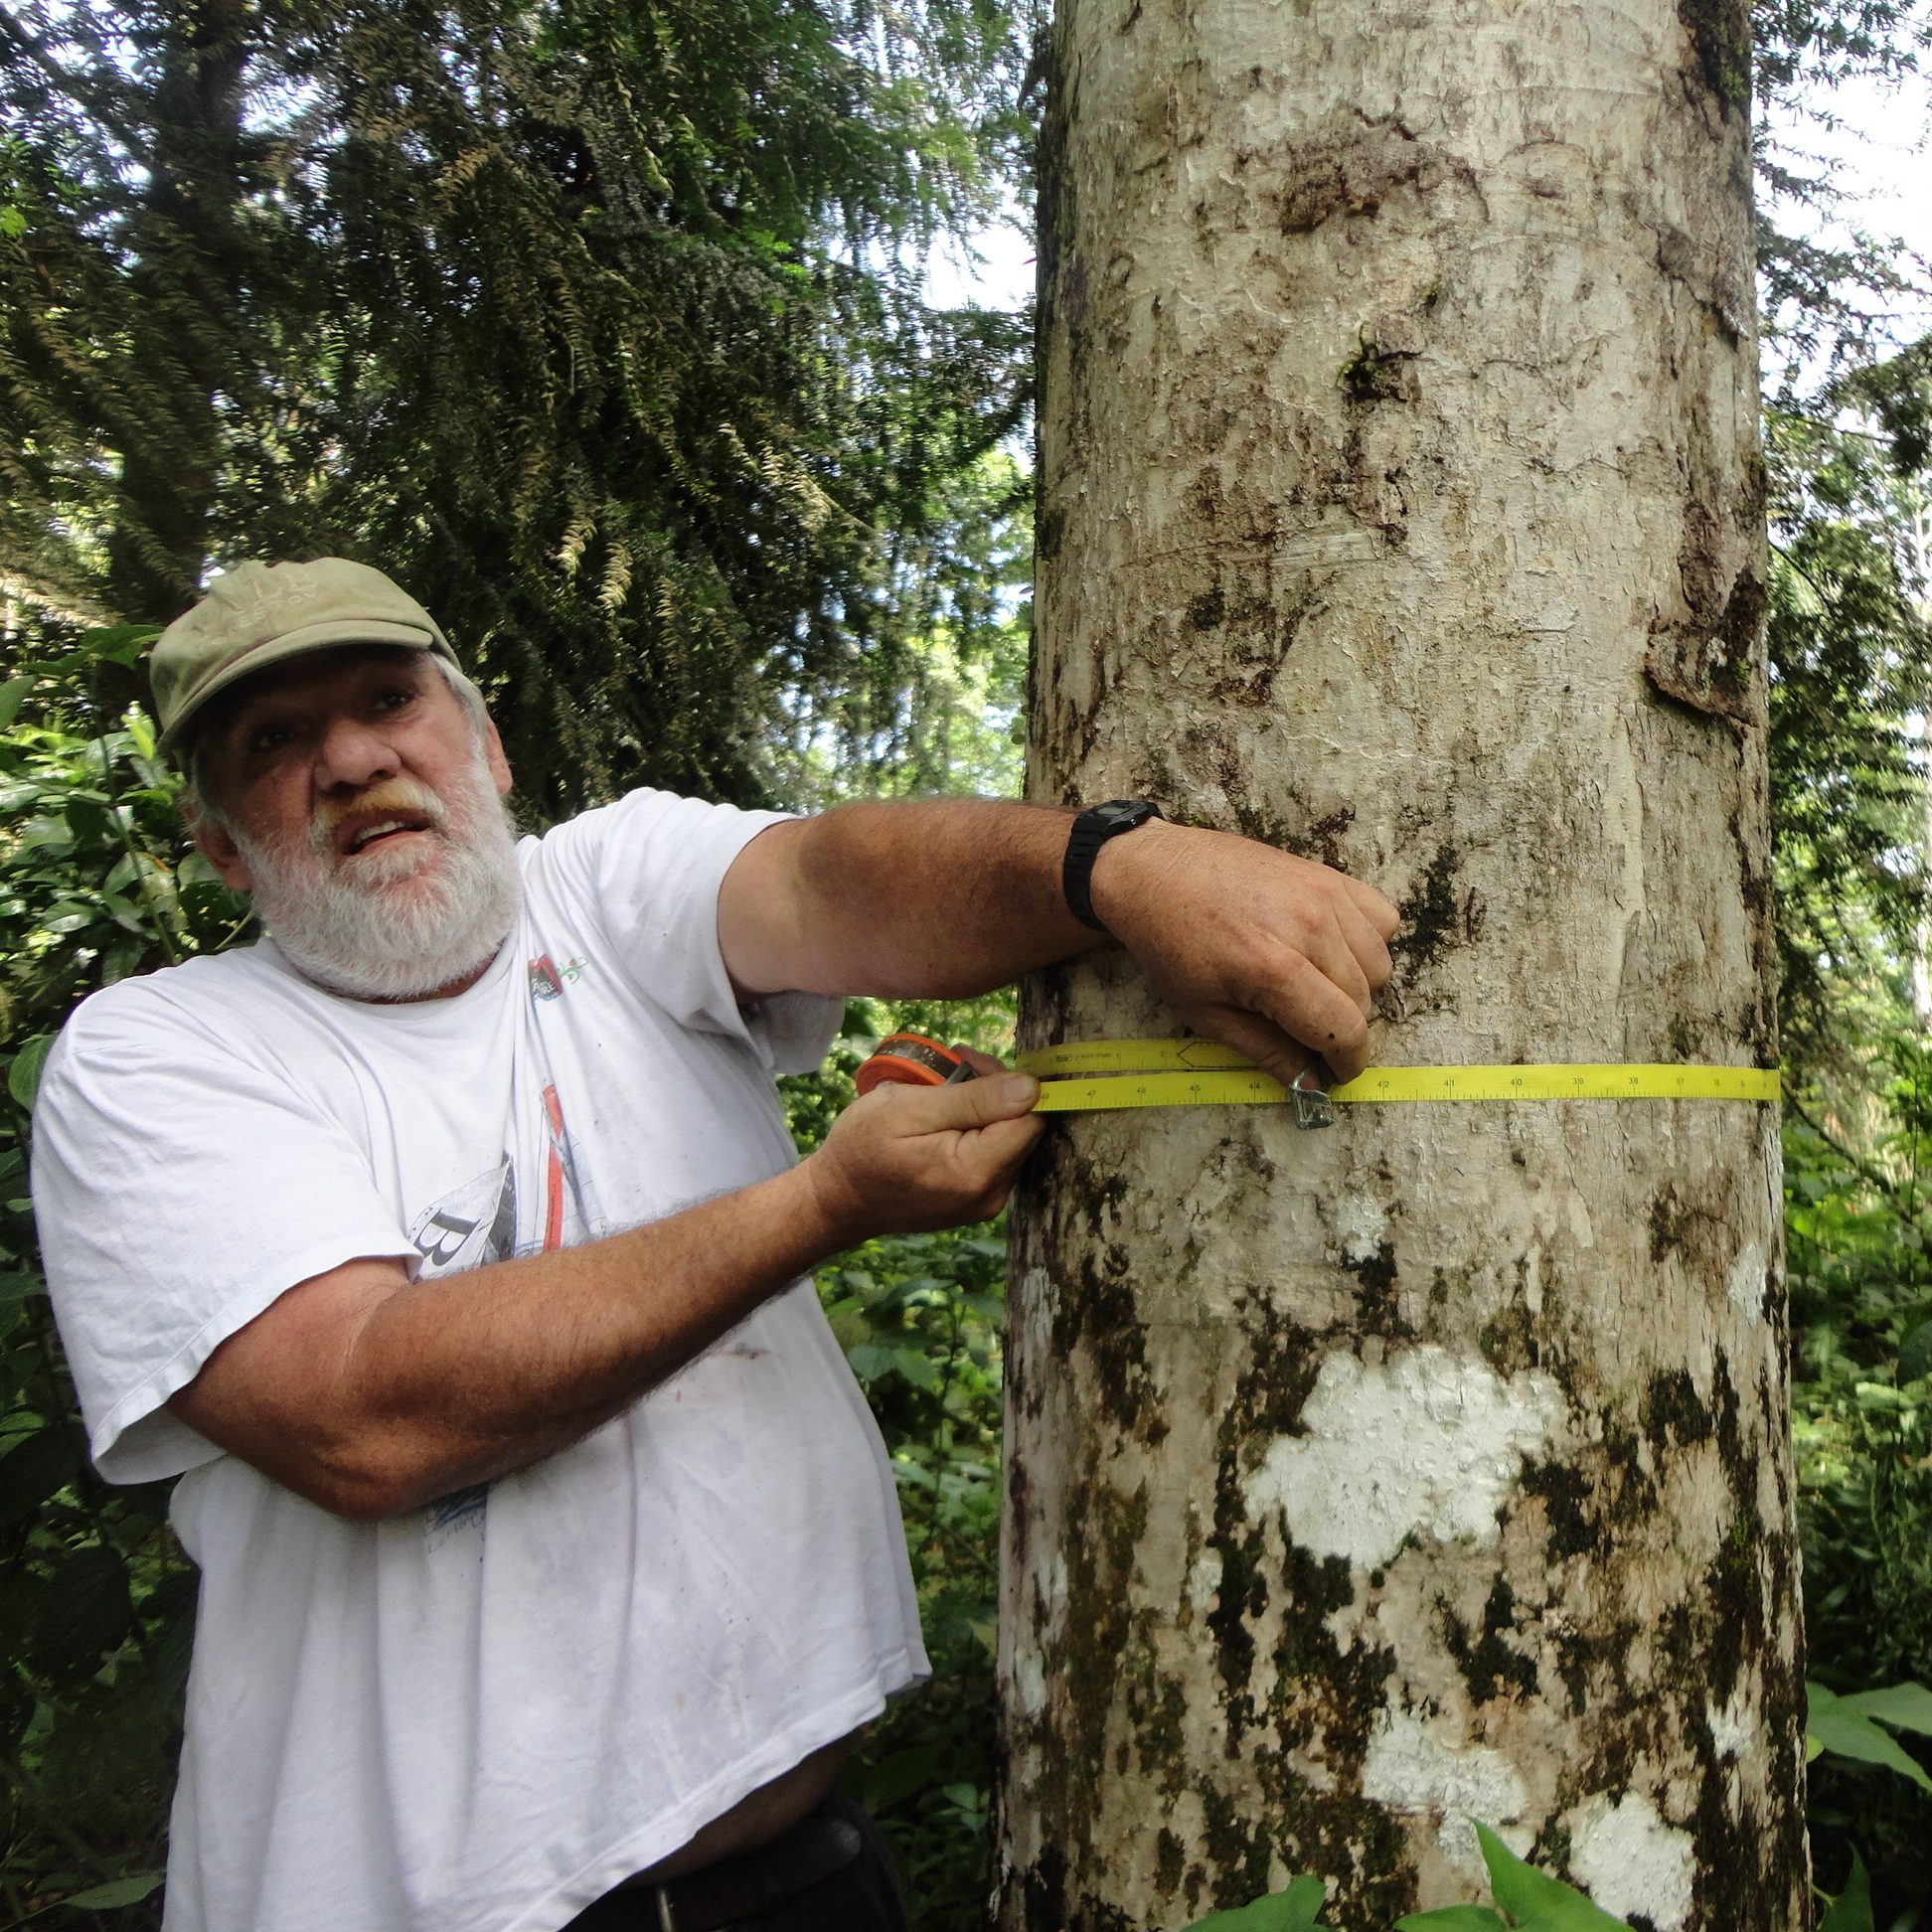 Forester Rolando measures the tree's diameter - square